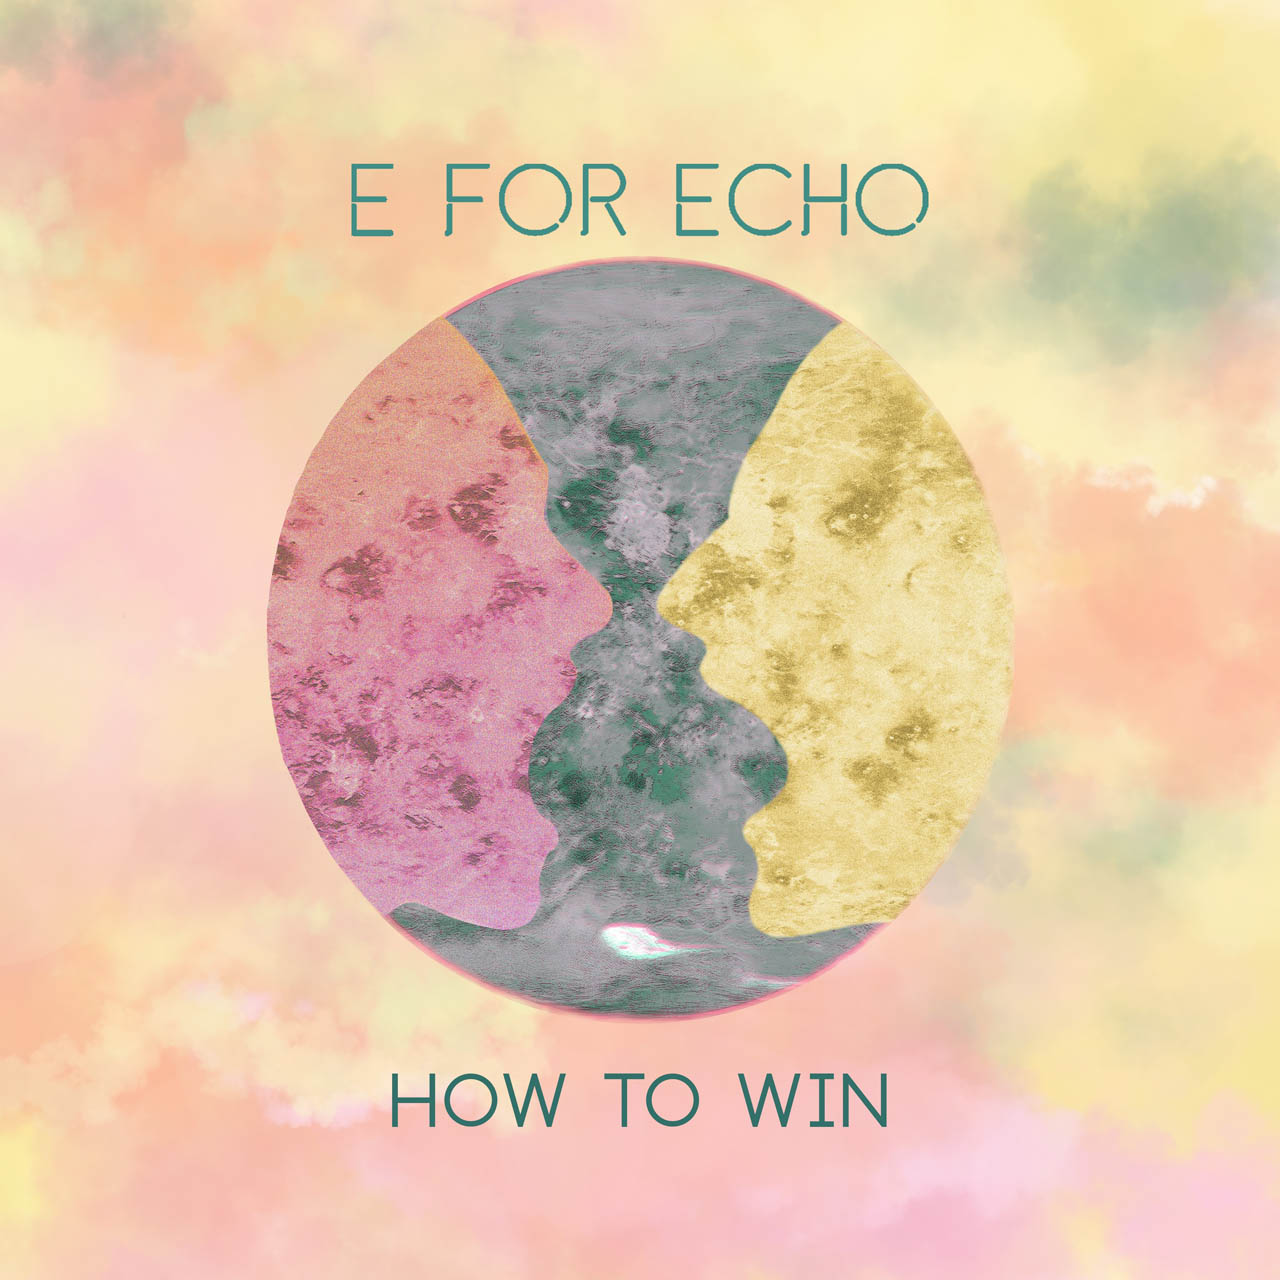 E for Echo - How to Win